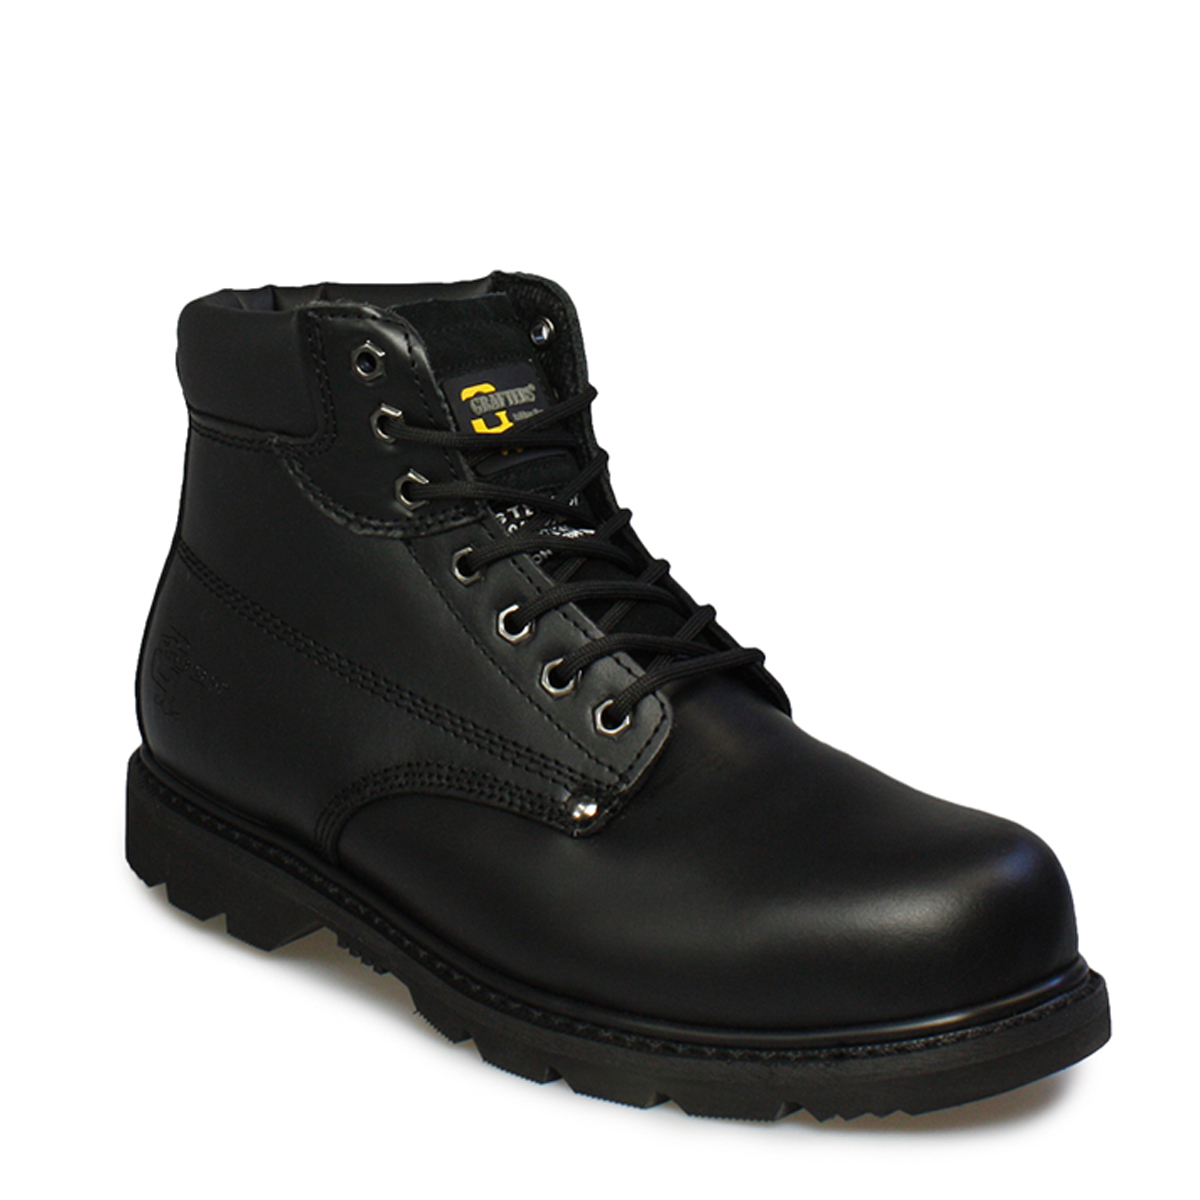 grafters mens boots lace up leather casual padded black